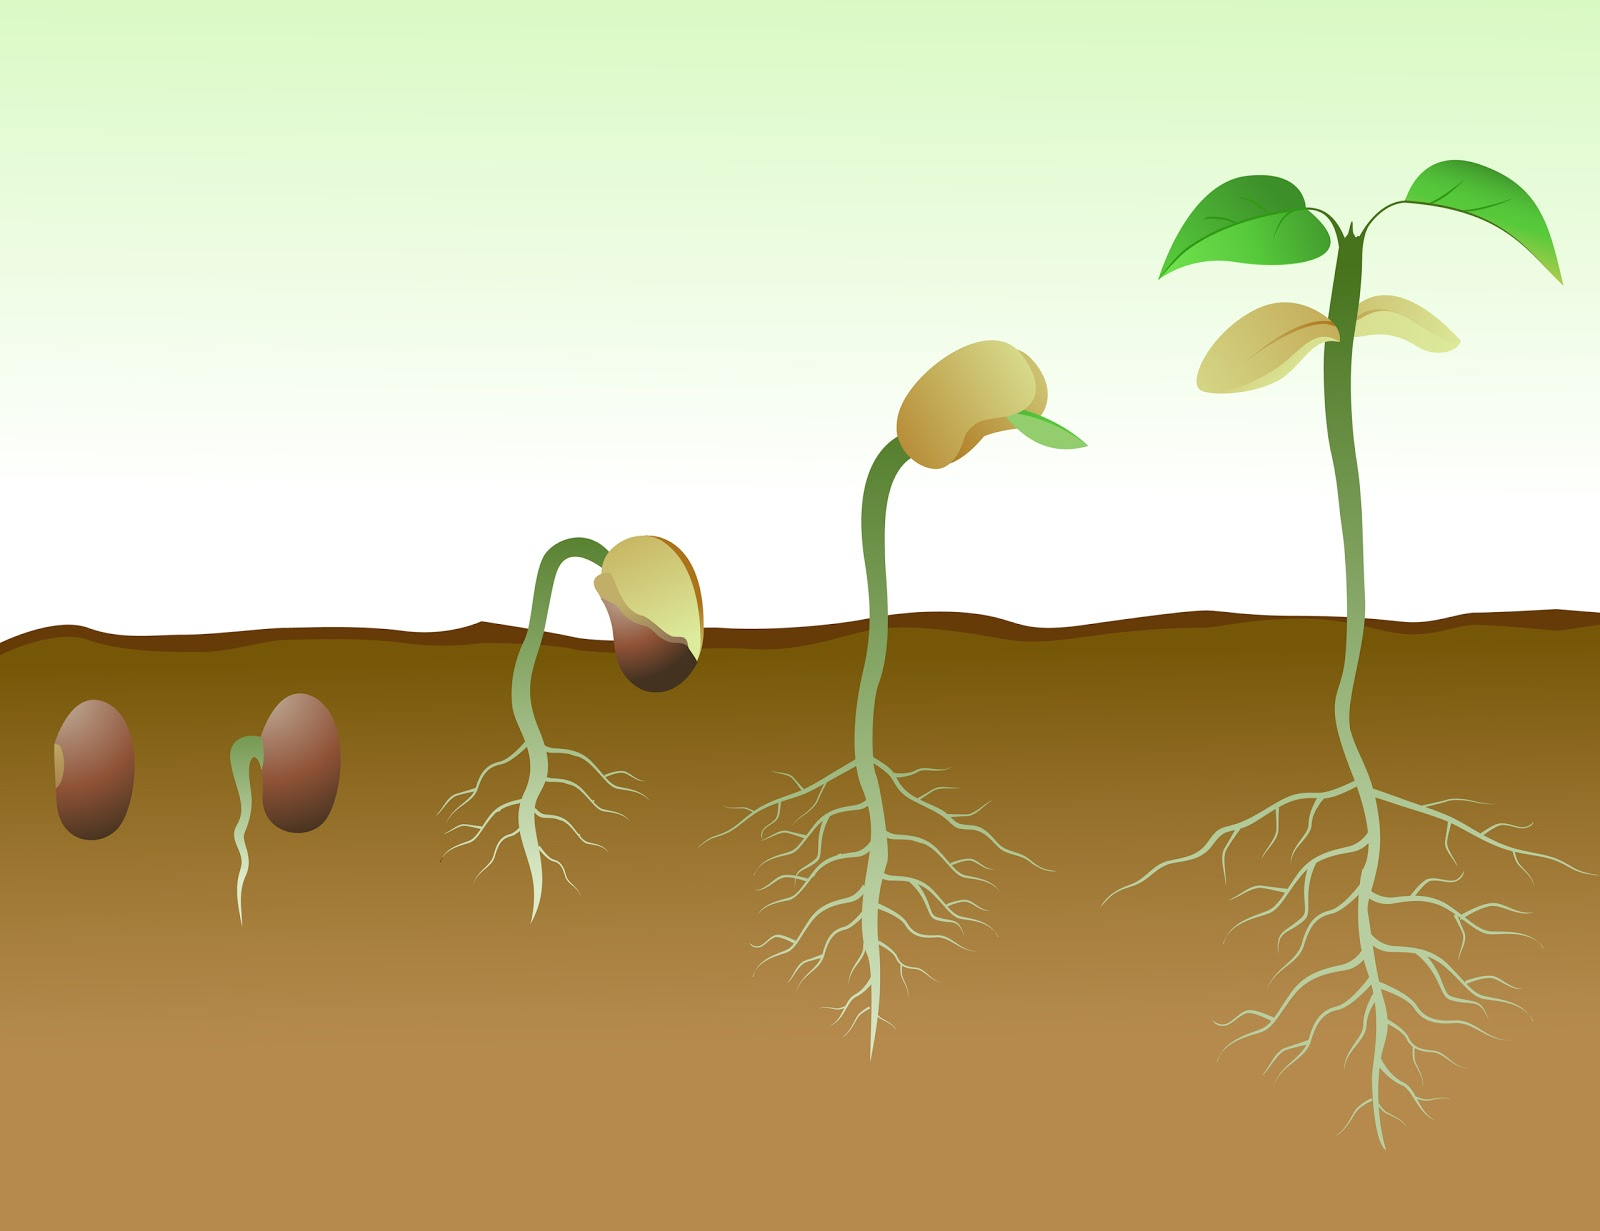 germination in plants Germination occurs when a spore or seed starts to grow it is a term used in botany when a spore or seed germinates, it produces a shoot or seedling, or .